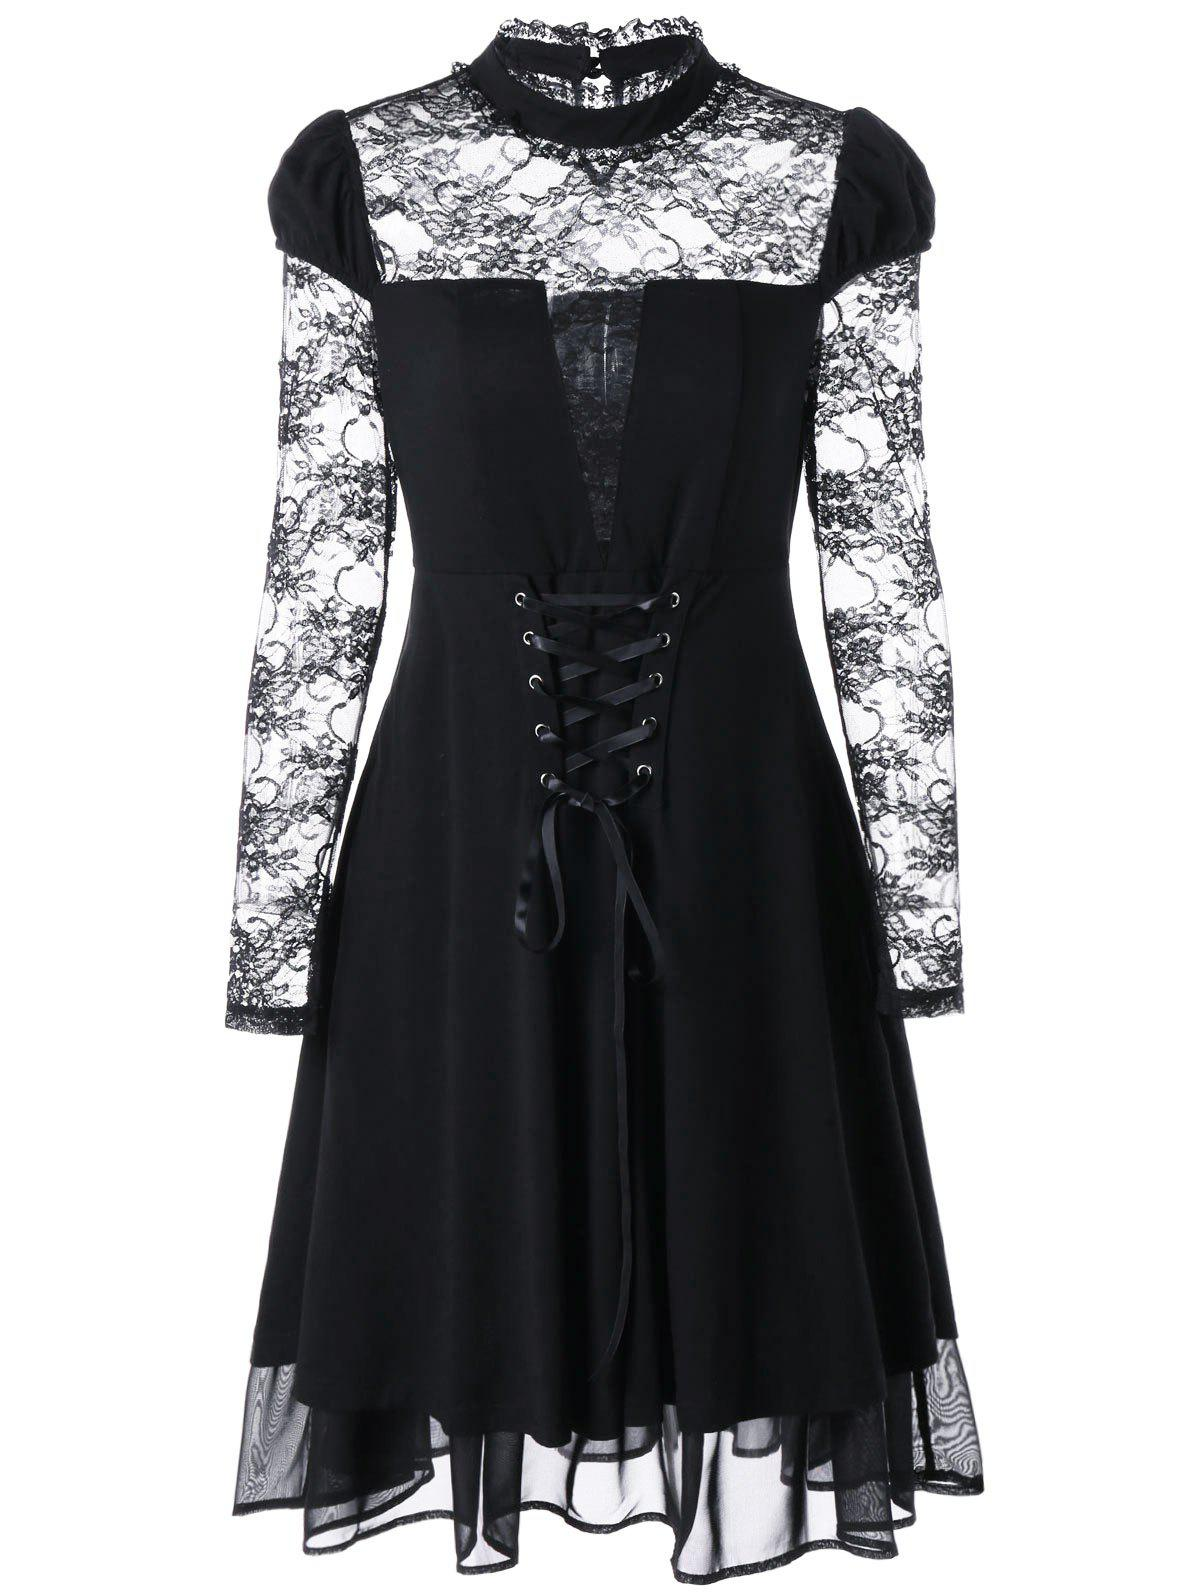 Gothic Sheer Lace Up Fit and Flare Dress - BLACK M